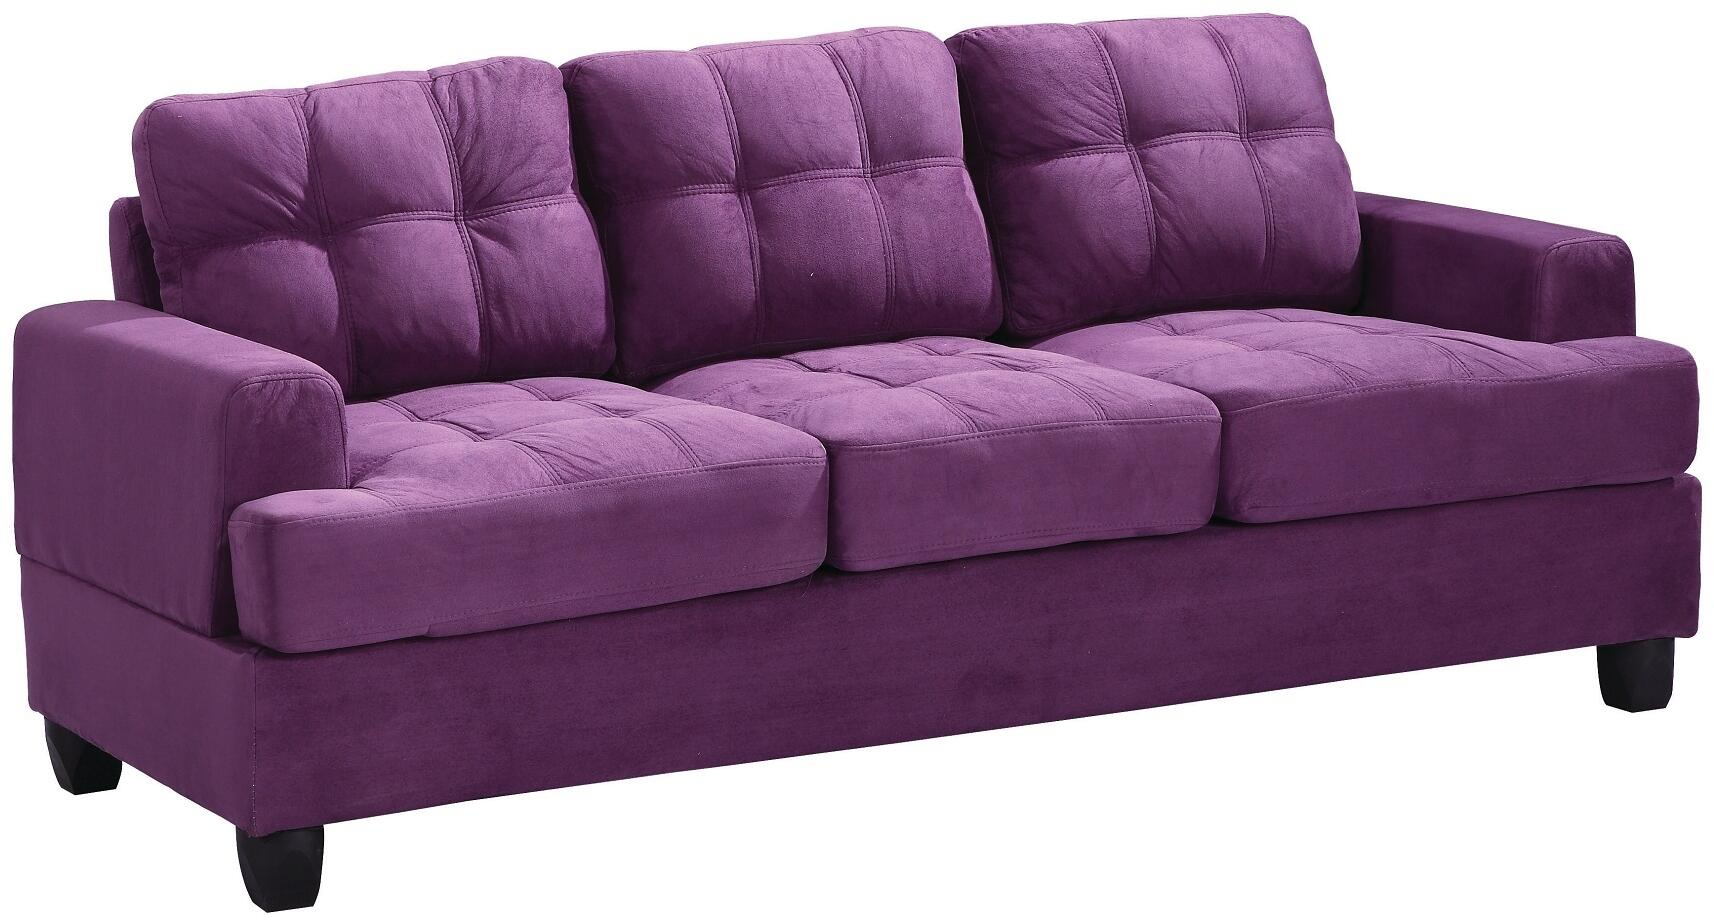 Tufted Sofa With Nailheads picture on glory furniture g517as with Tufted Sofa With Nailheads, sofa 4496f3085a9d9bb4dbc03762a40b0675